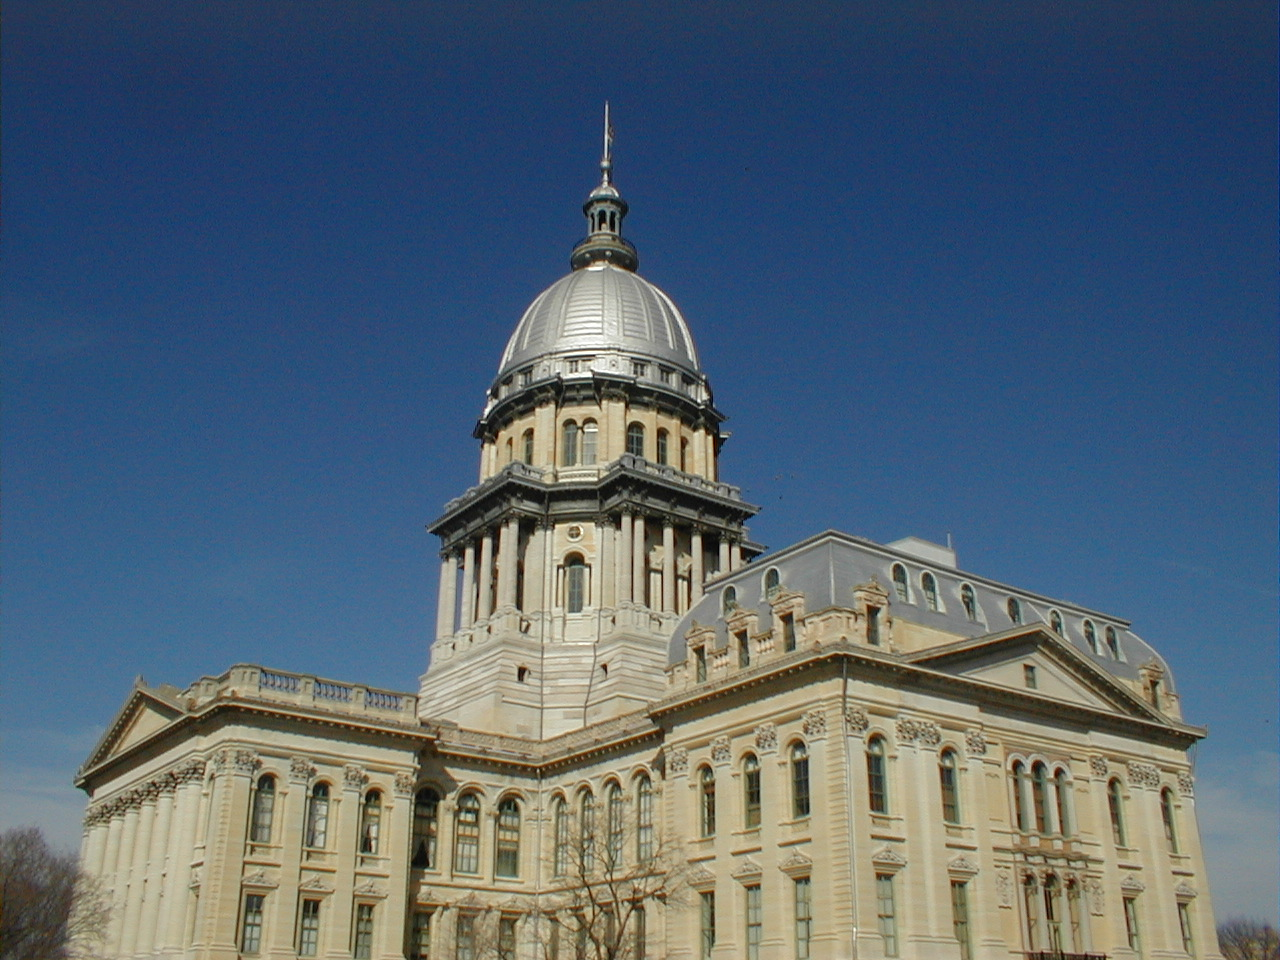 State of Illinois Capitol Building